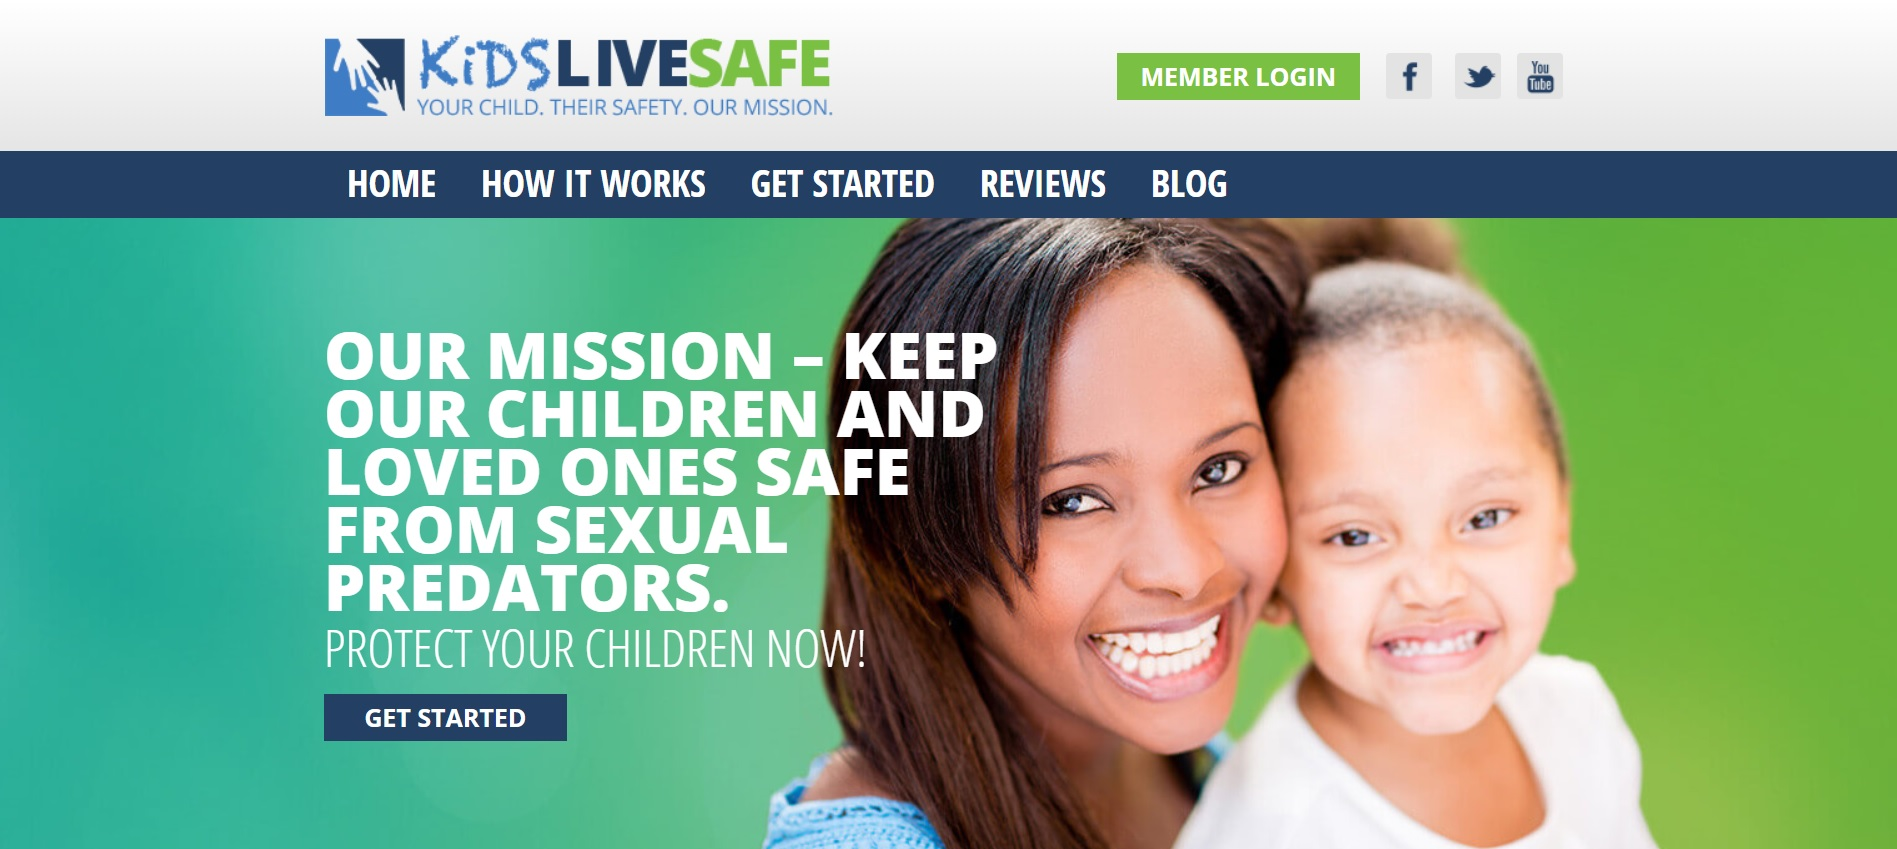 Is Kidslivesafe.com a Scam? Review and Complaint